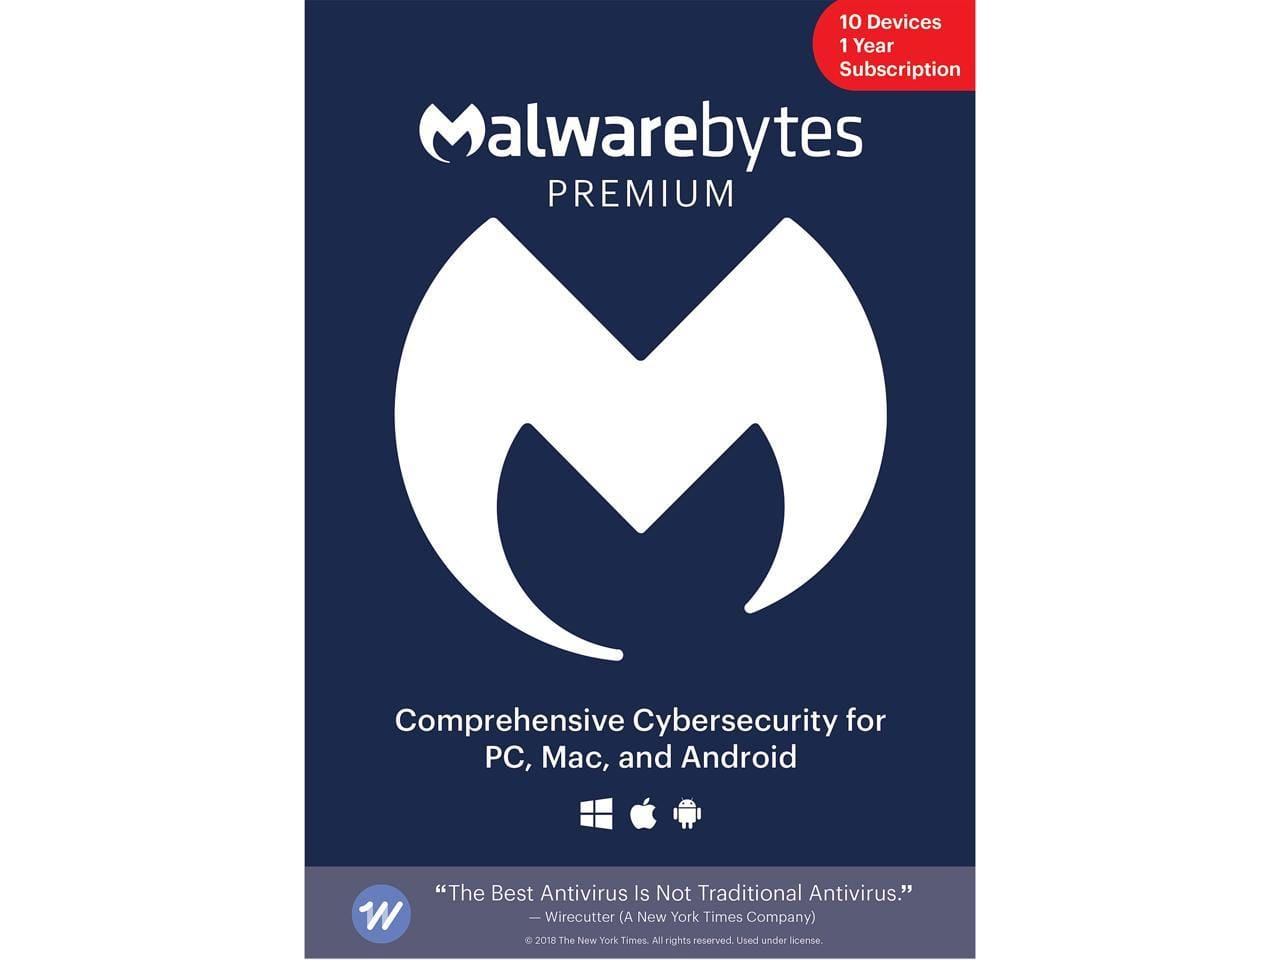 Malwarebytes Anti-Malware Premium 3.0 - 10 Devices / 1 Year [Download] |  Key Card @Newegg $50